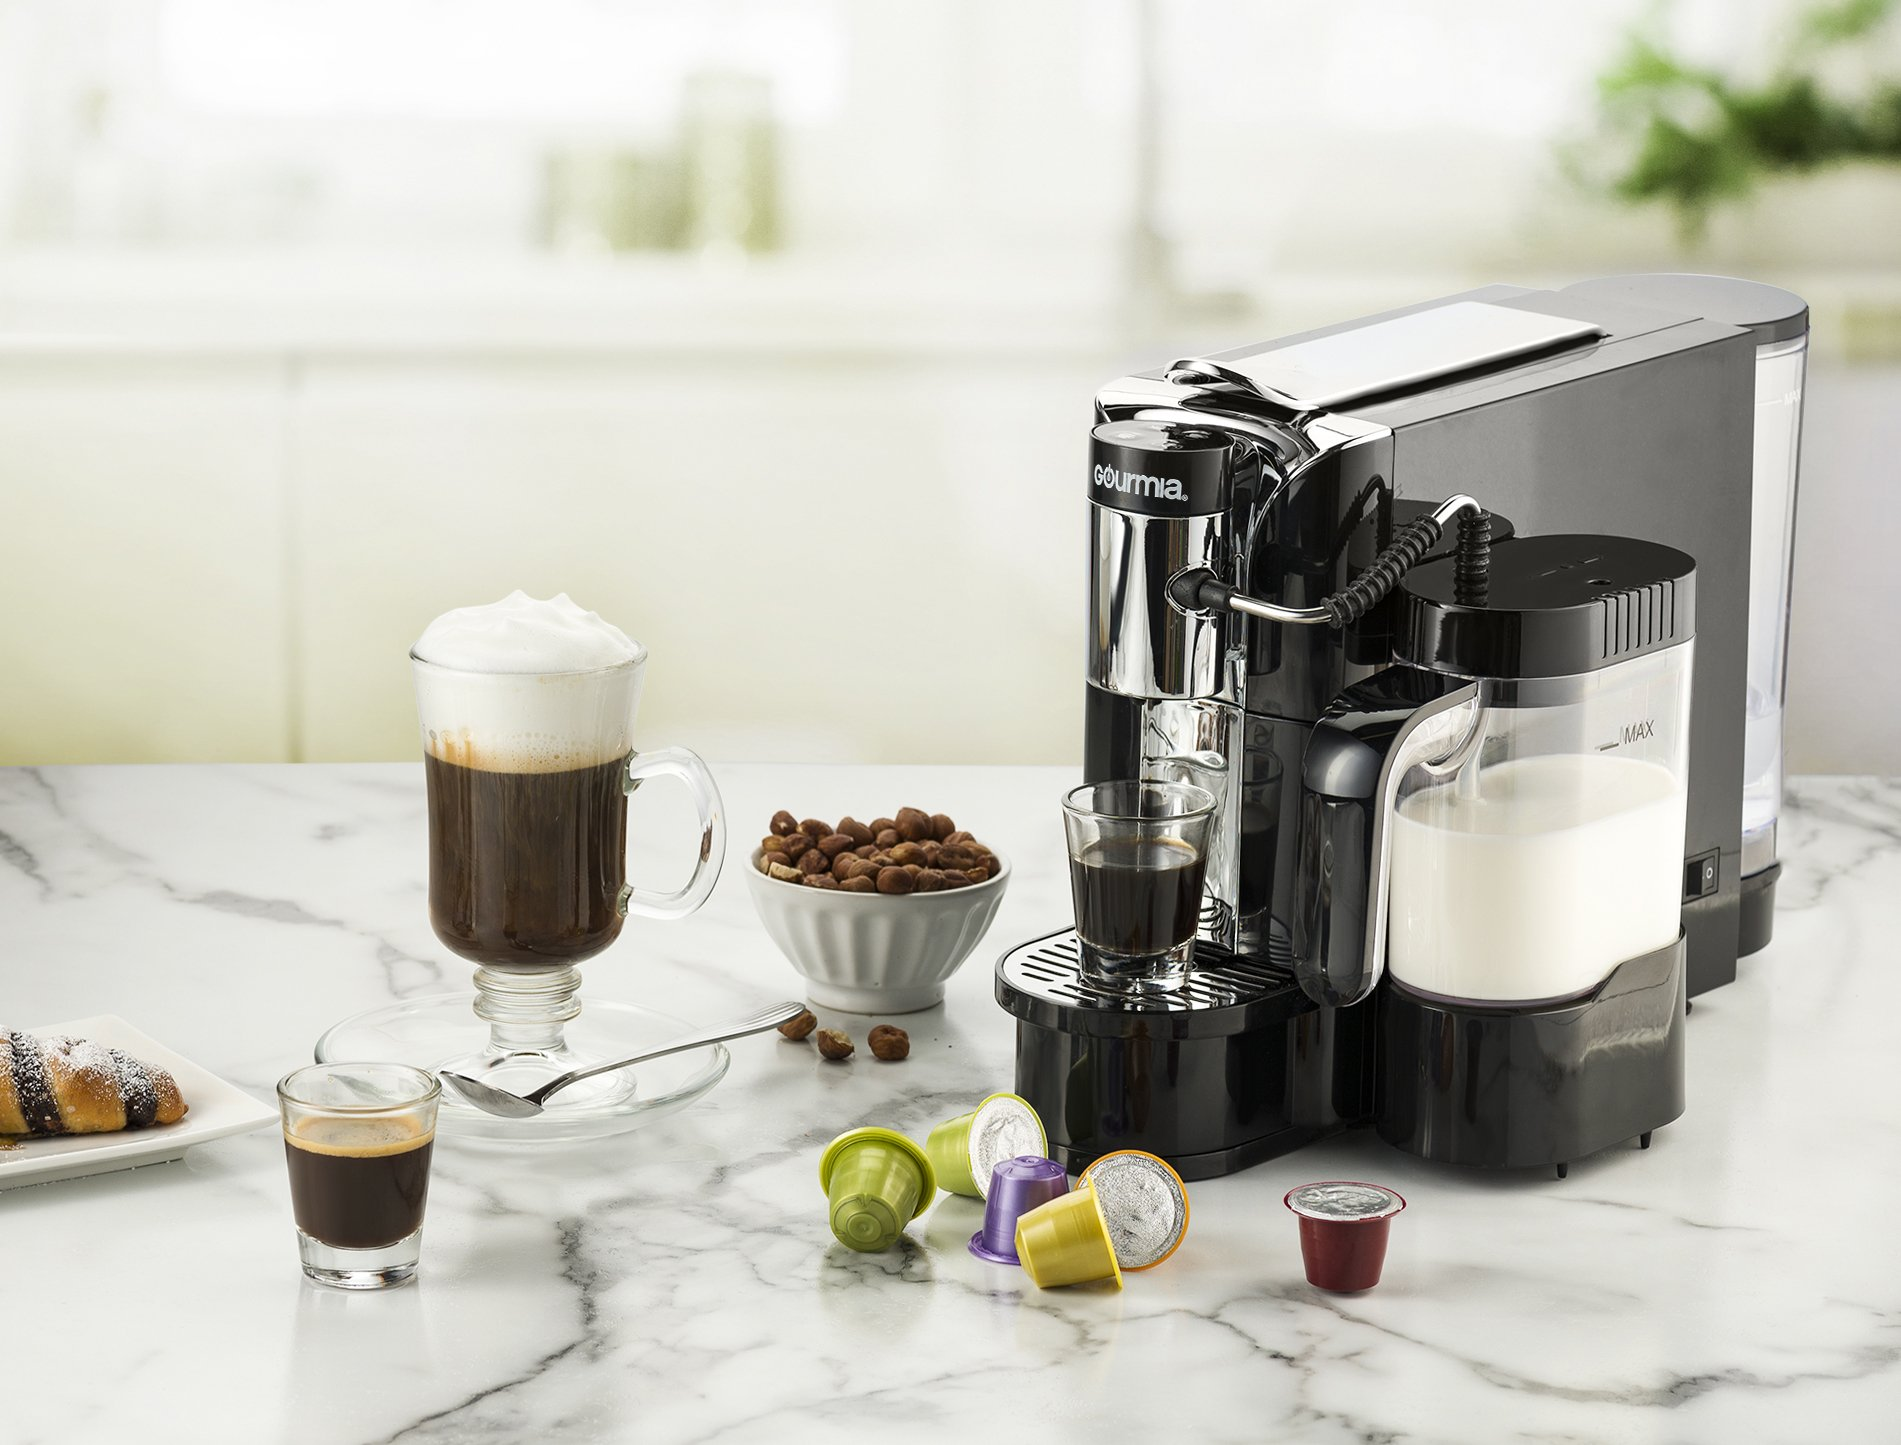 Gourmia GCM5500 - One Touch Automatic Espresso Cappuccino & Latte Maker Coffee Machine - Brew, Froth Milk, and Mix Into Cup with the Push of One Button- Nespresso Compatible by Gourmia (Image #2)